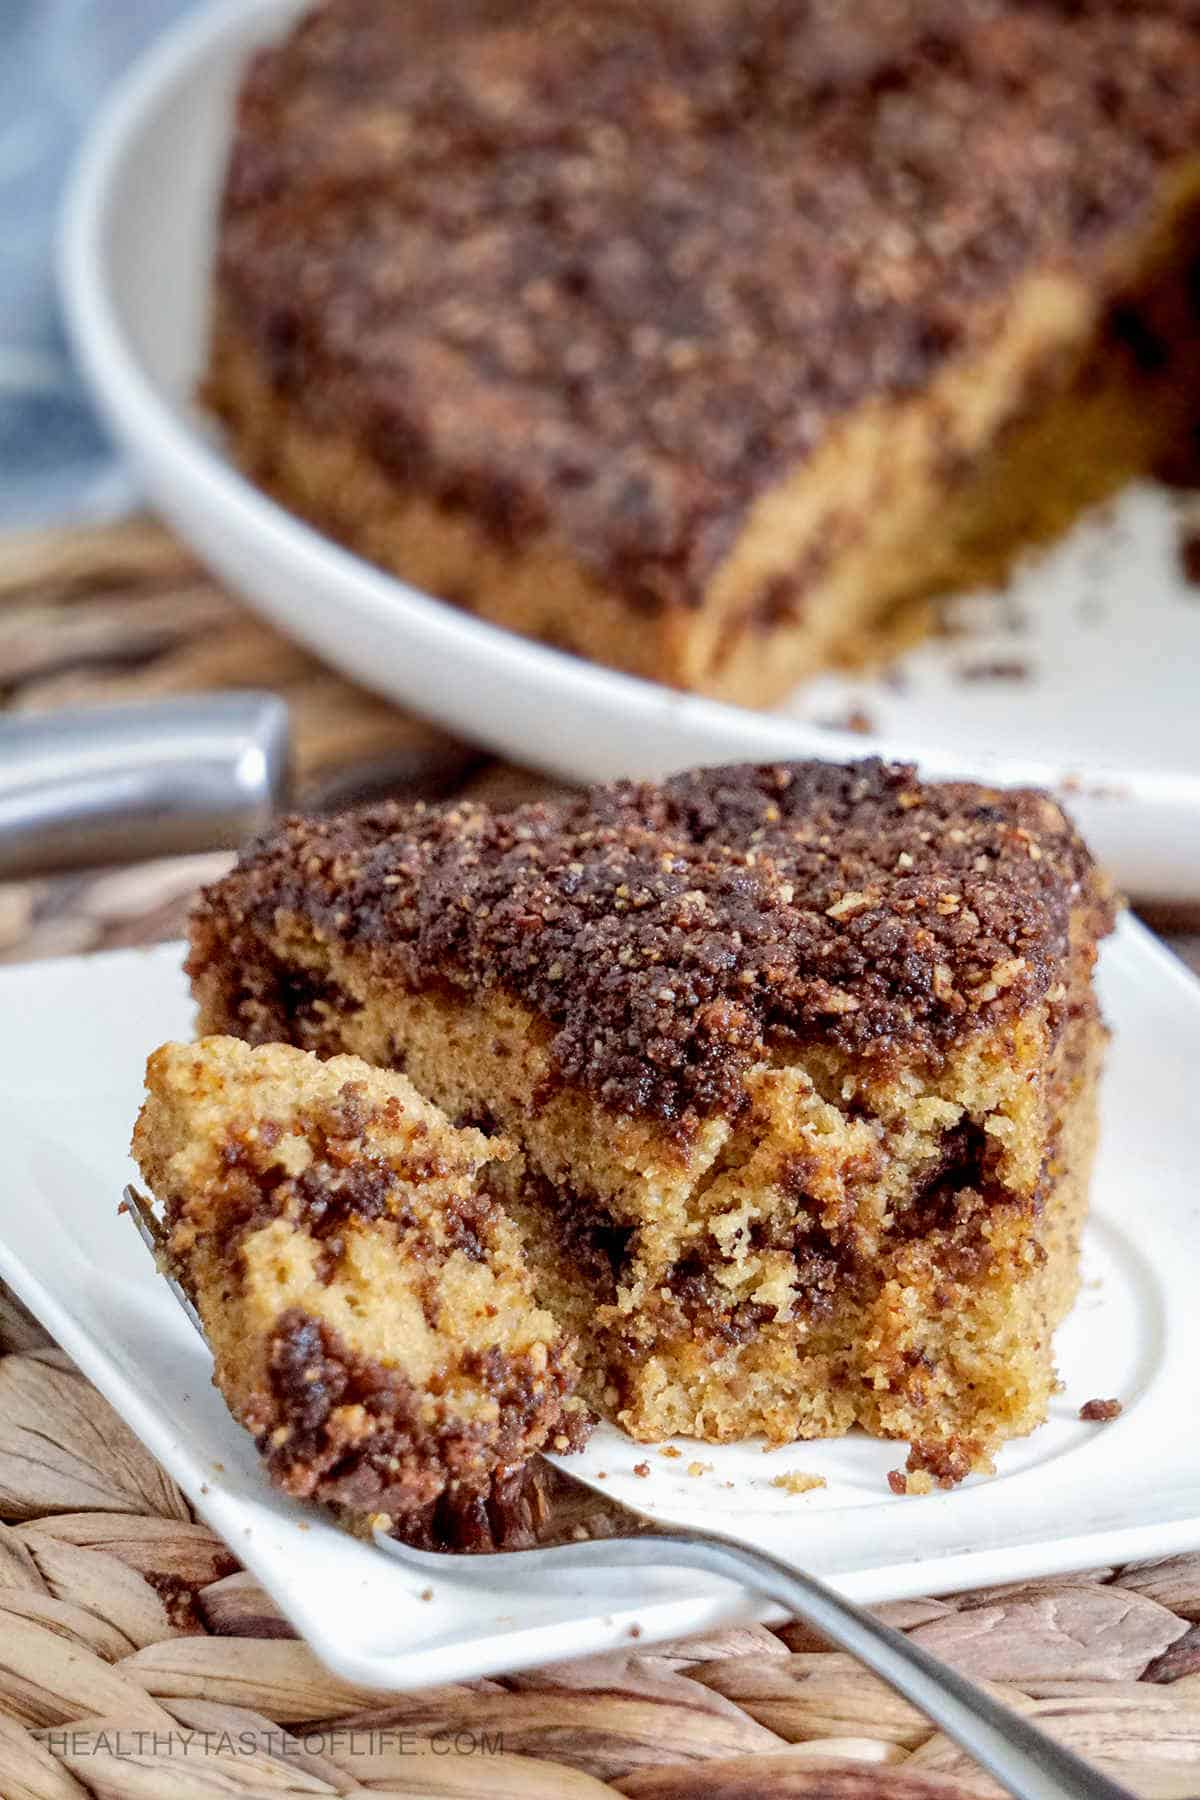 Dairy free gluten free coffee cake with cinnamon, walnut coffee crumb. A gluten free coffee cake recipe that you will enjoy again and again. Its easy, moist, fluffy and stays like this for days! #glutenfreecoffeecake #dairyfree #glutenfree #refinedsugarfree #coffeecake